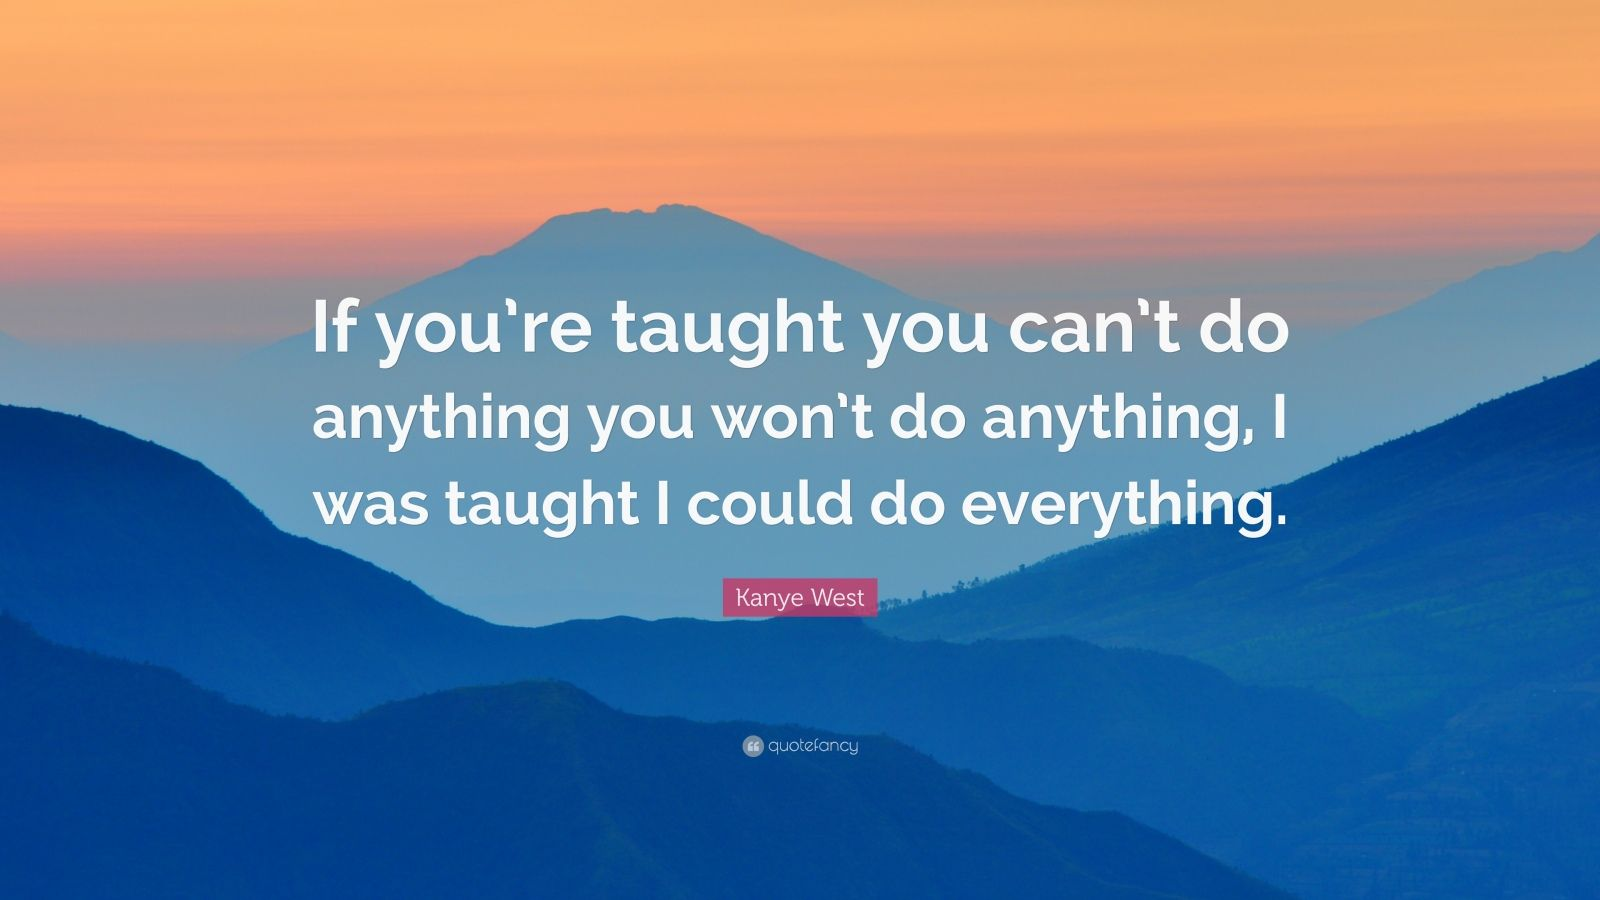 """Kanye West Quote: """"If you're taught you can't do anything you won't do anything, I was taught I could do everything."""""""